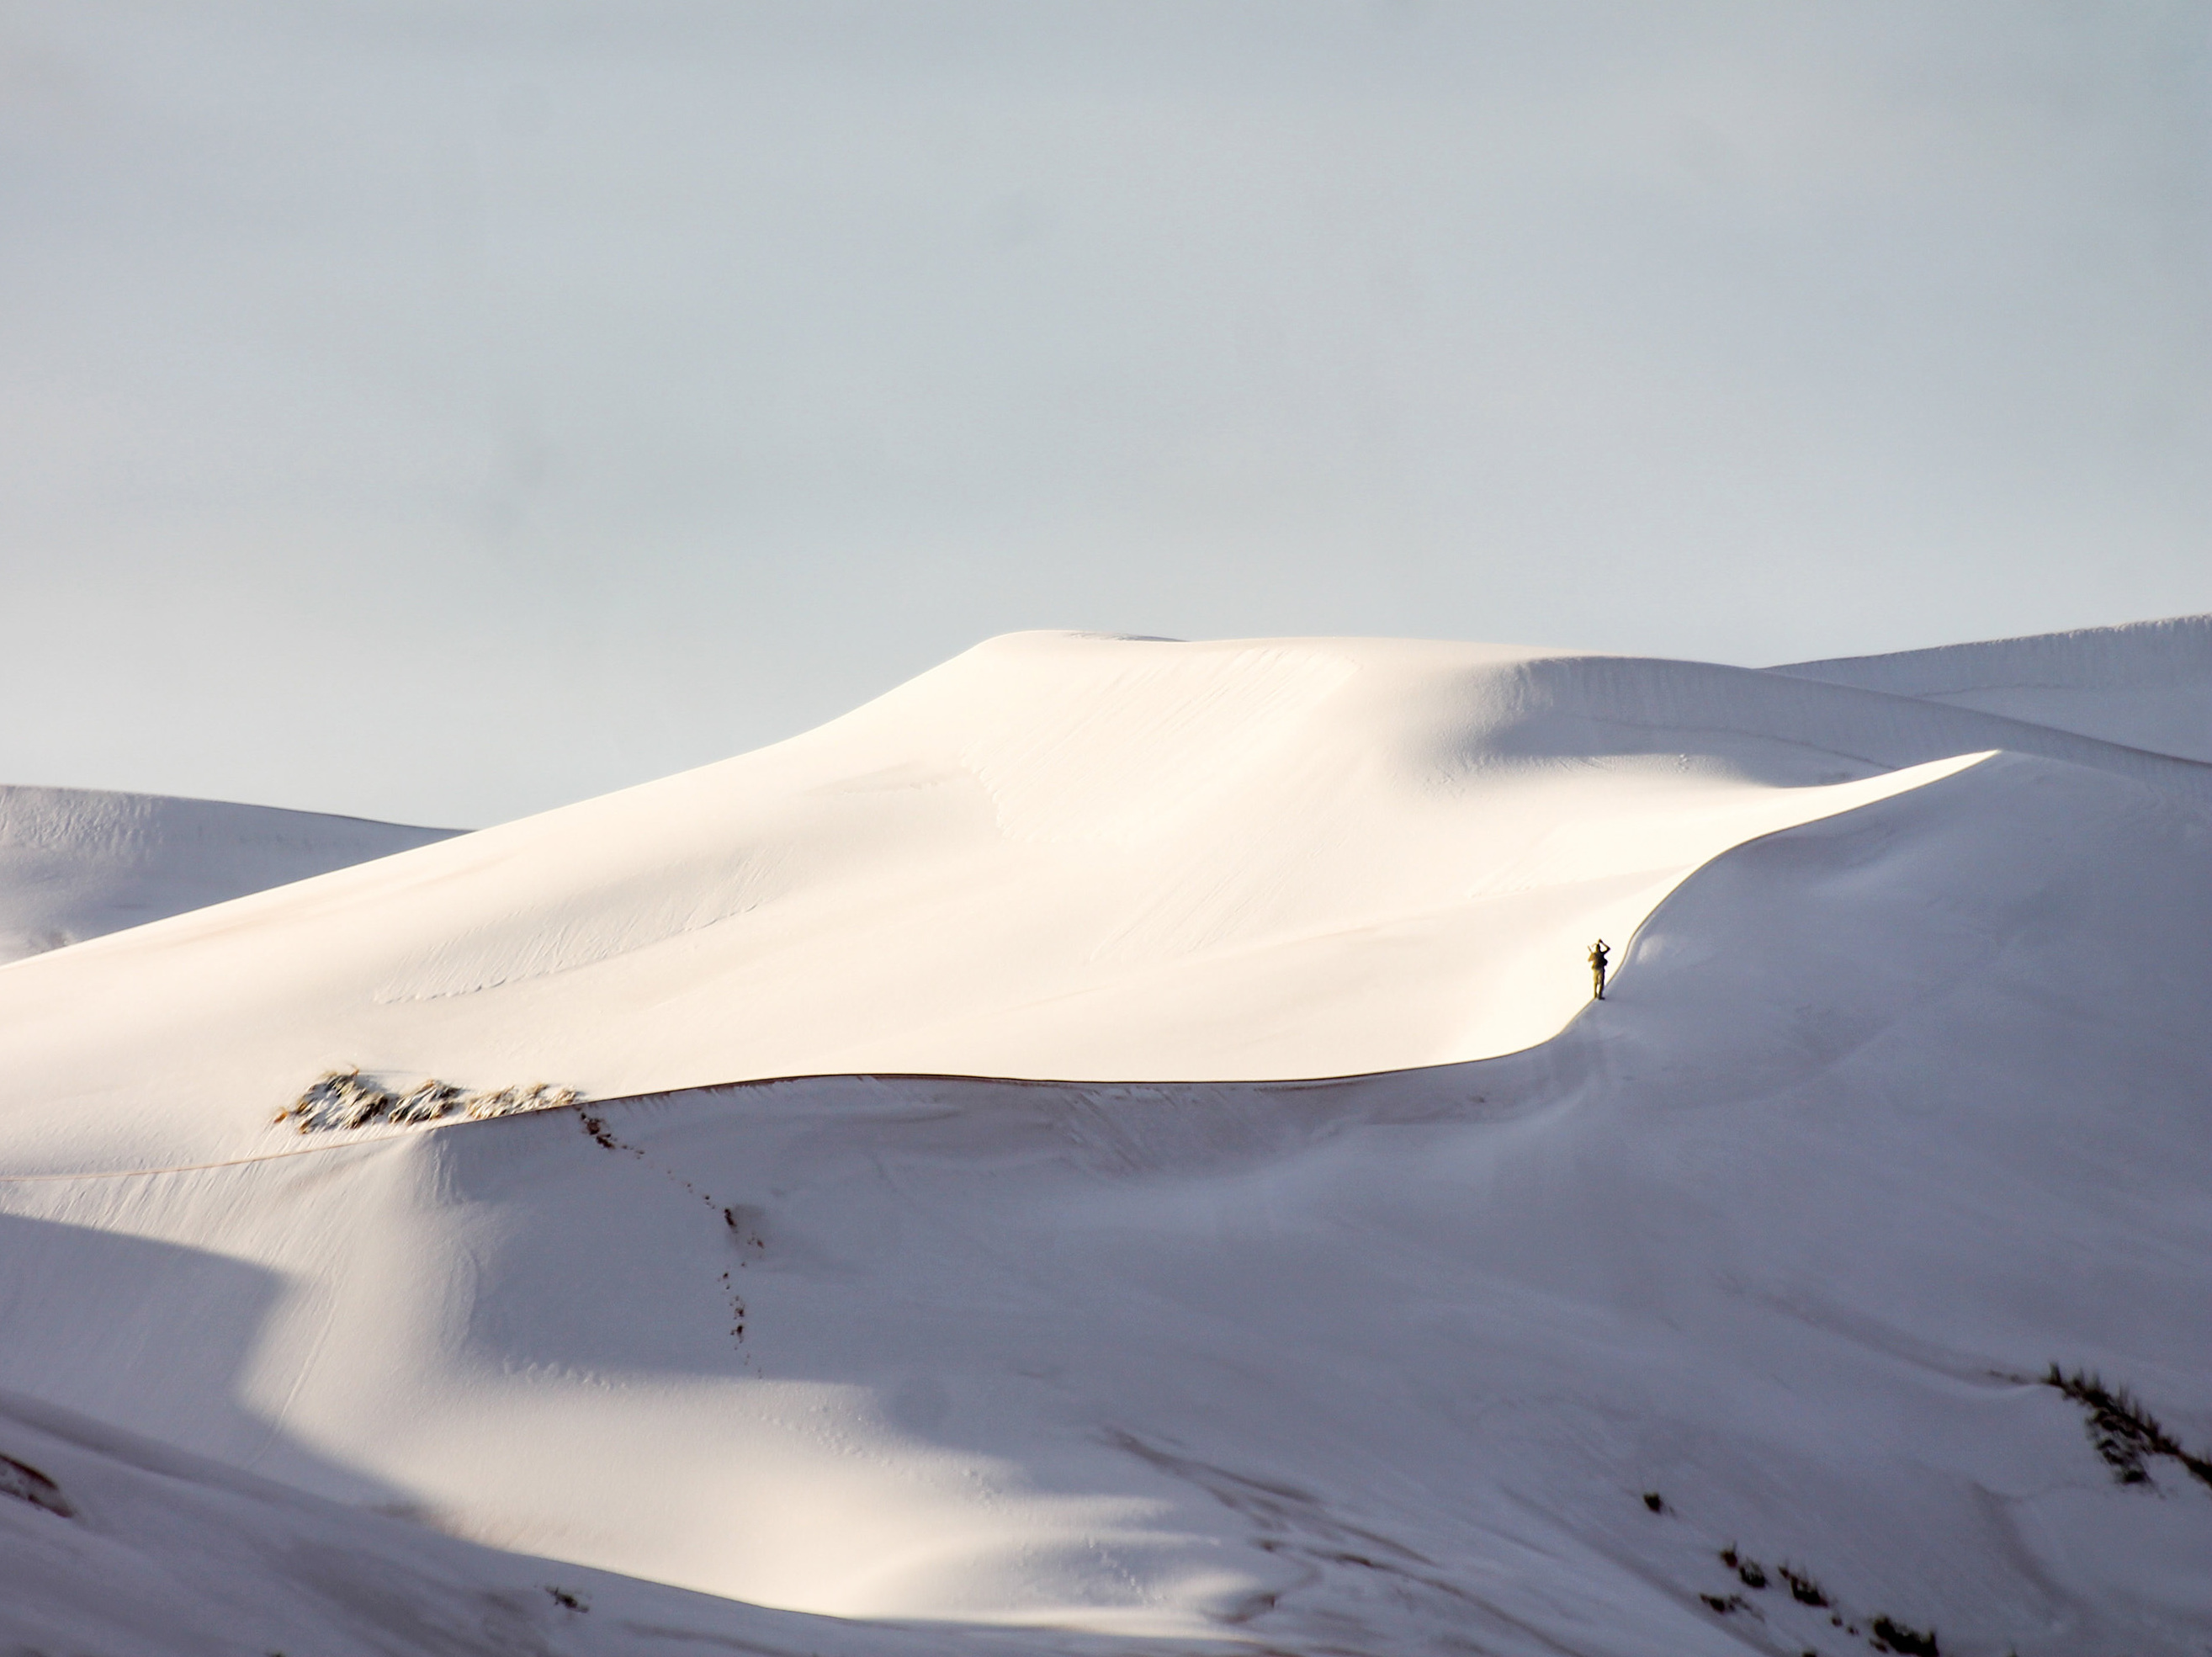 A Rare Winter Storm Covered the Sahara Desert in Snow